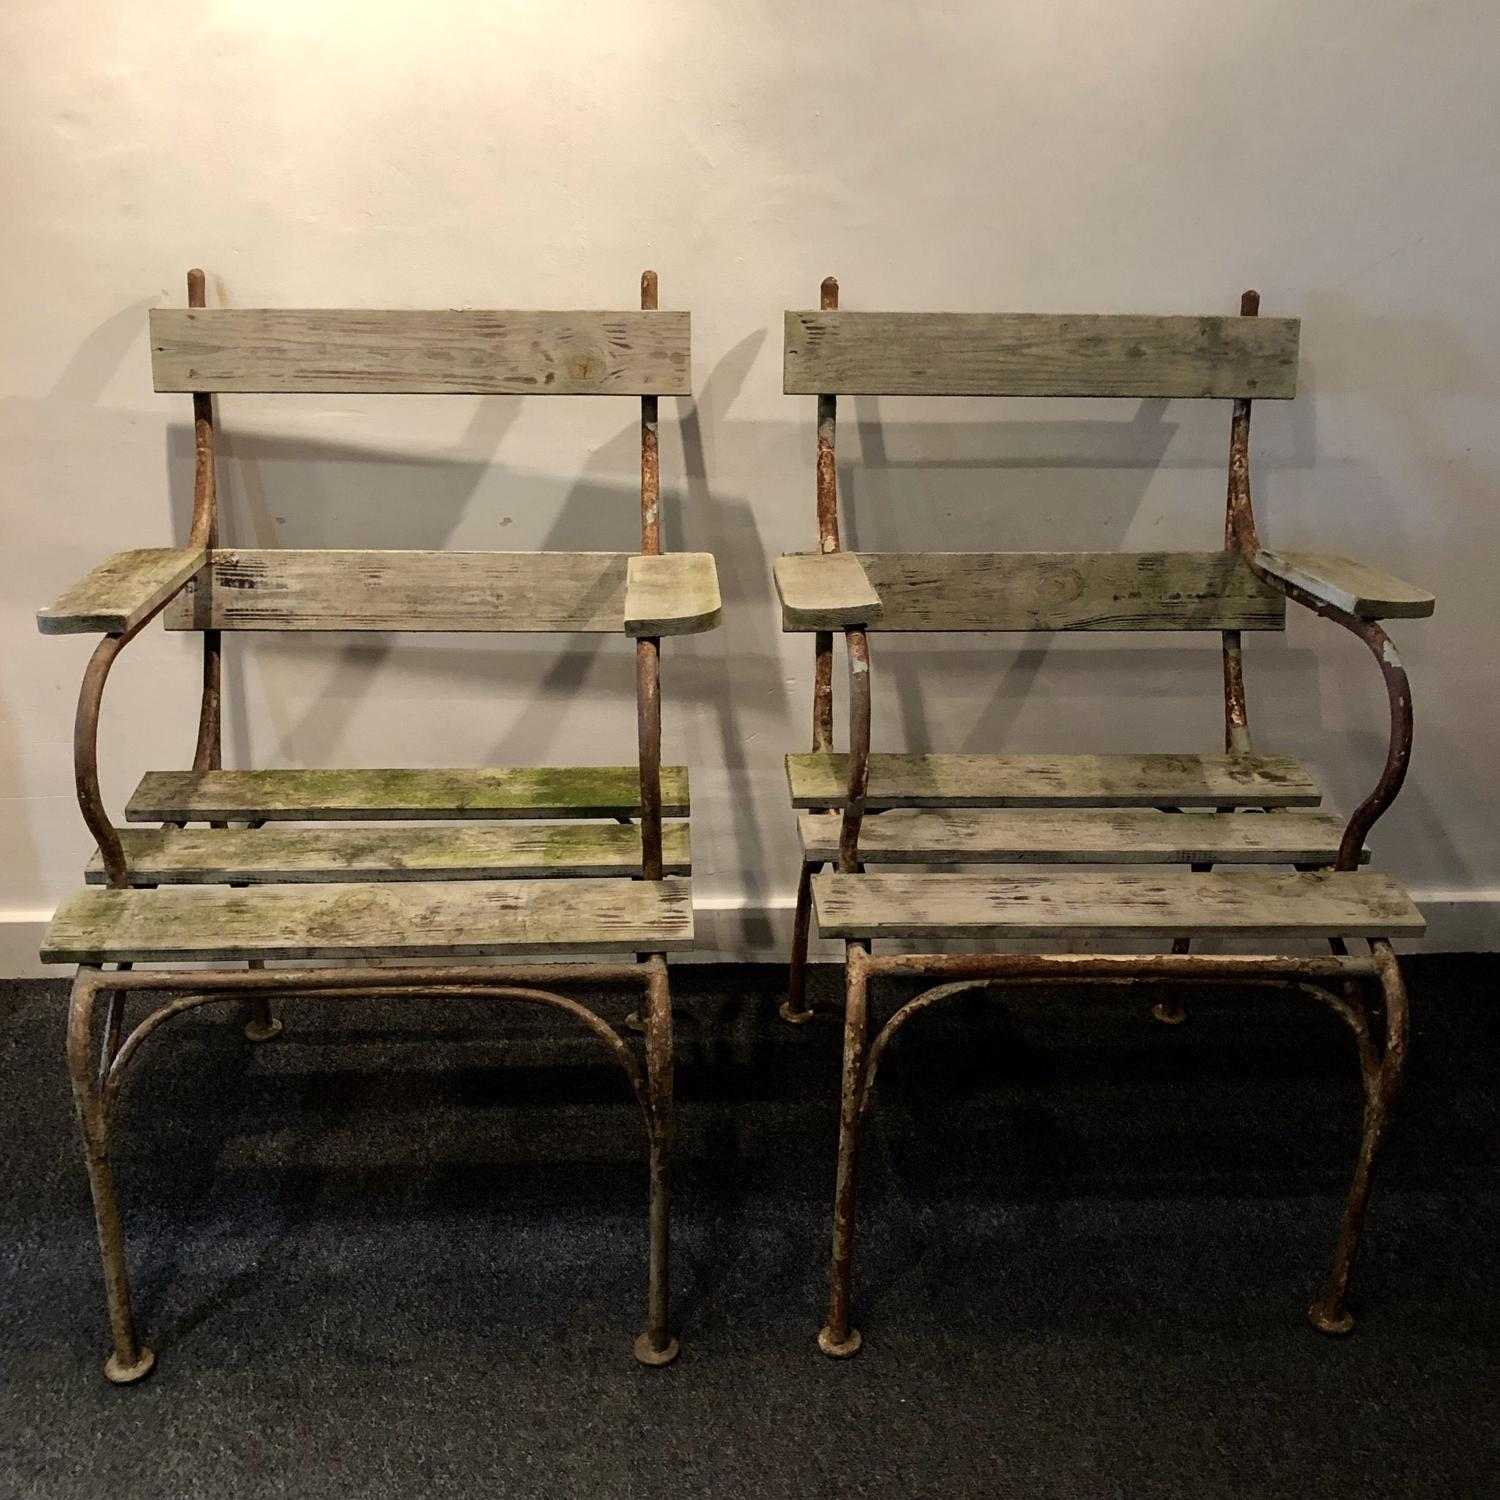 A pair of garden chairs